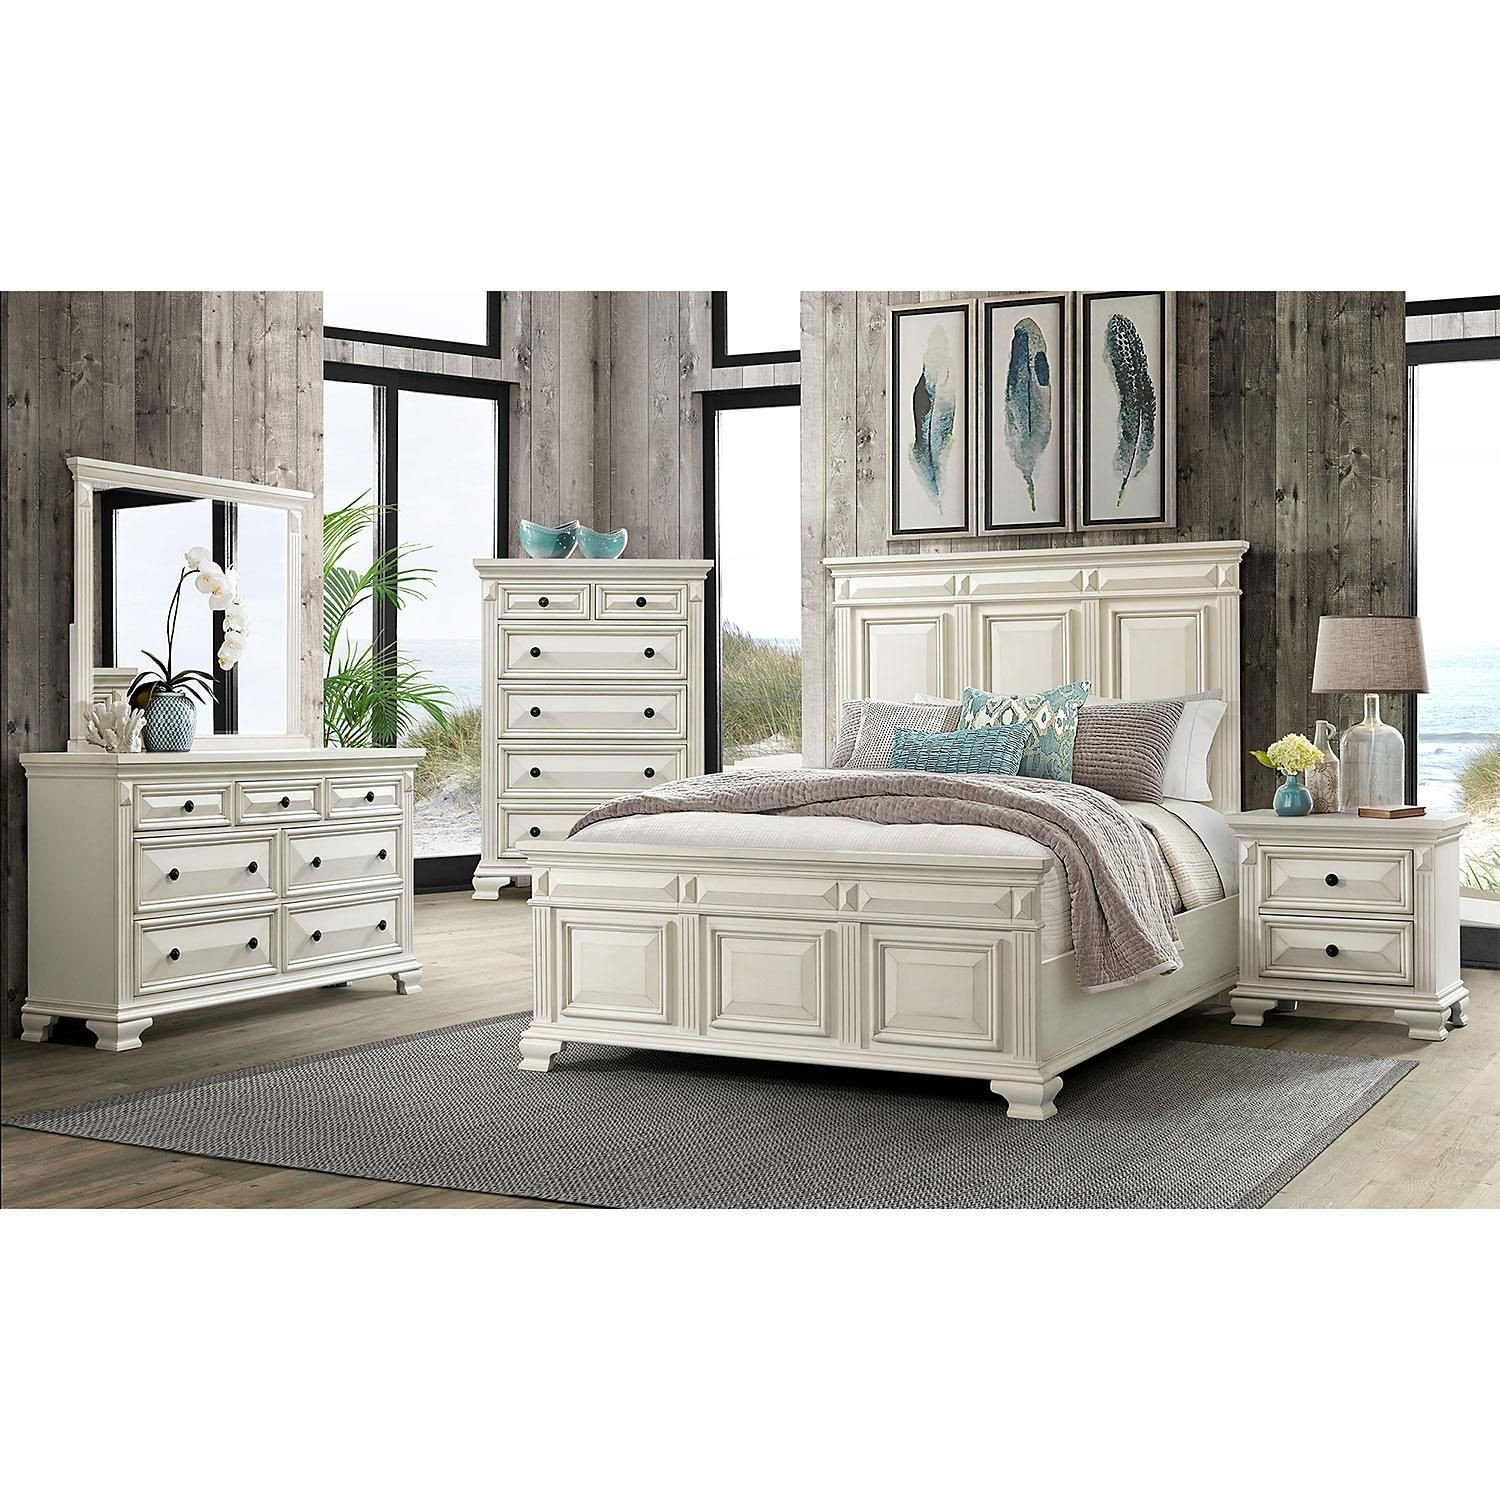 White Master Bedroom Furniture Awesome $1599 00 society Den Trent Panel 6 Piece King Bedroom Set